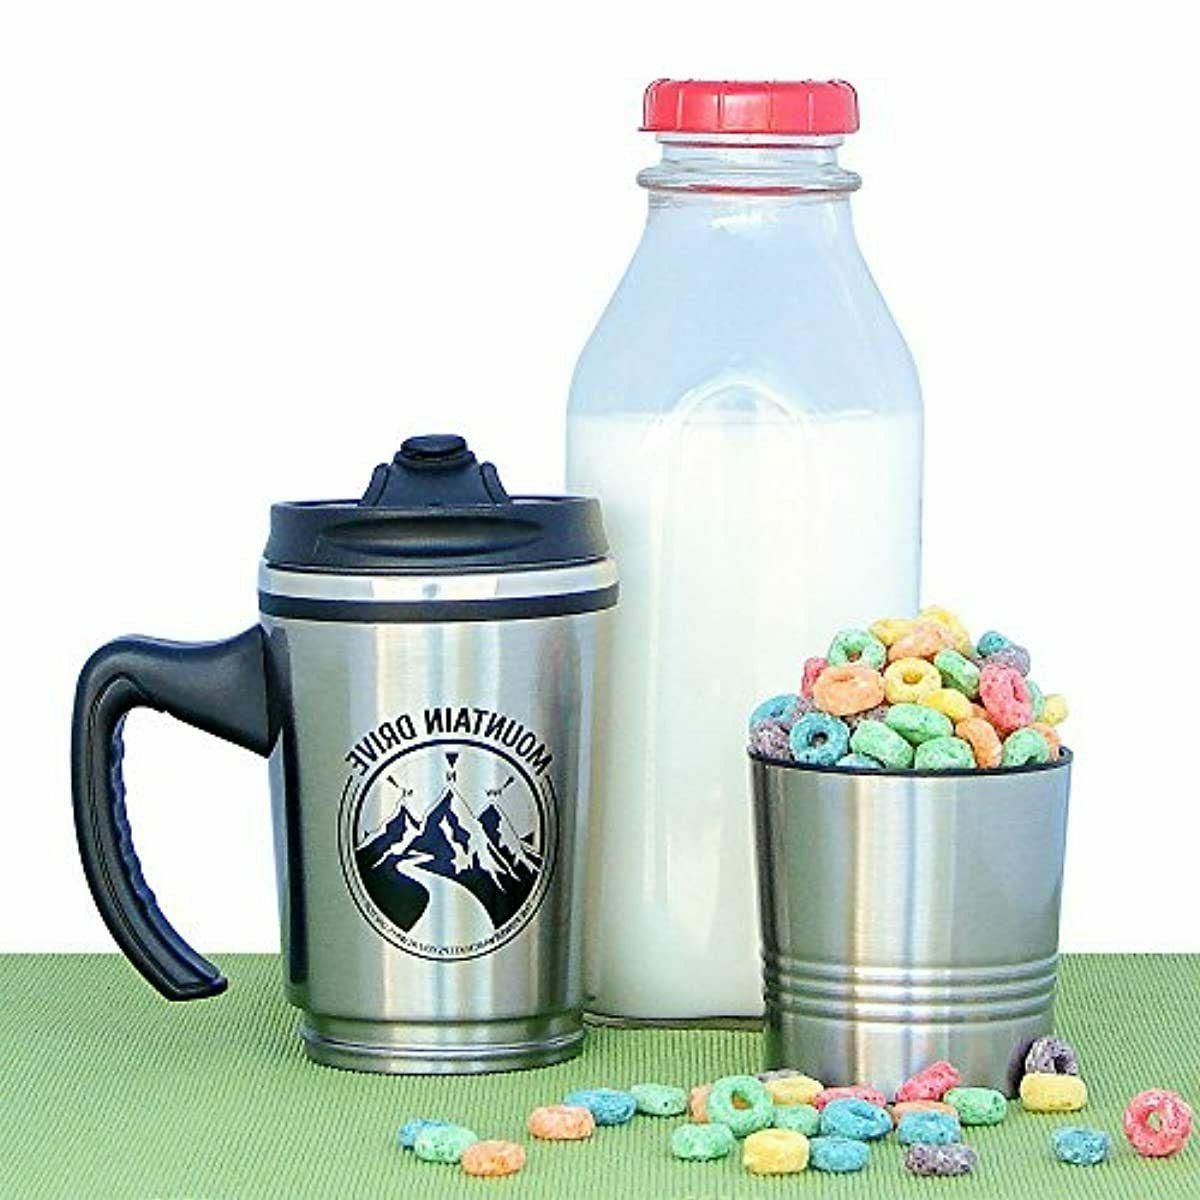 Travel Mug Wall Coffee Stainless Steel With Handle Insulated Oz